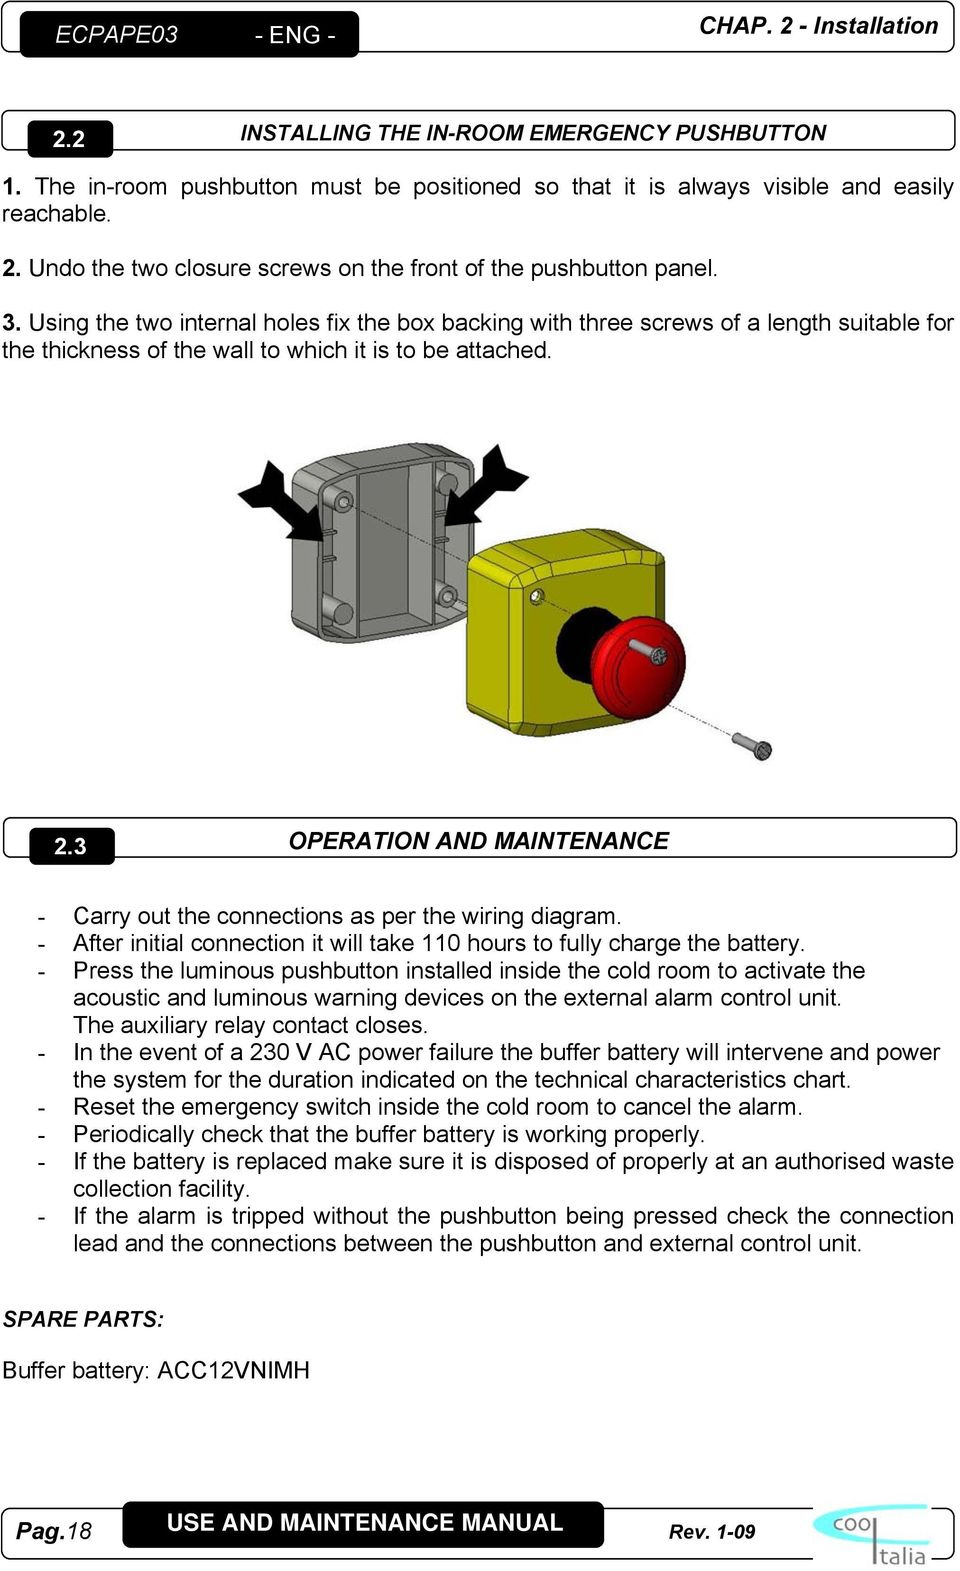 3 OPERATION AND MAINTENANCE - Carry out the connections as per the wiring diagram. - After initial connection it will take 110 hours to fully charge the battery.